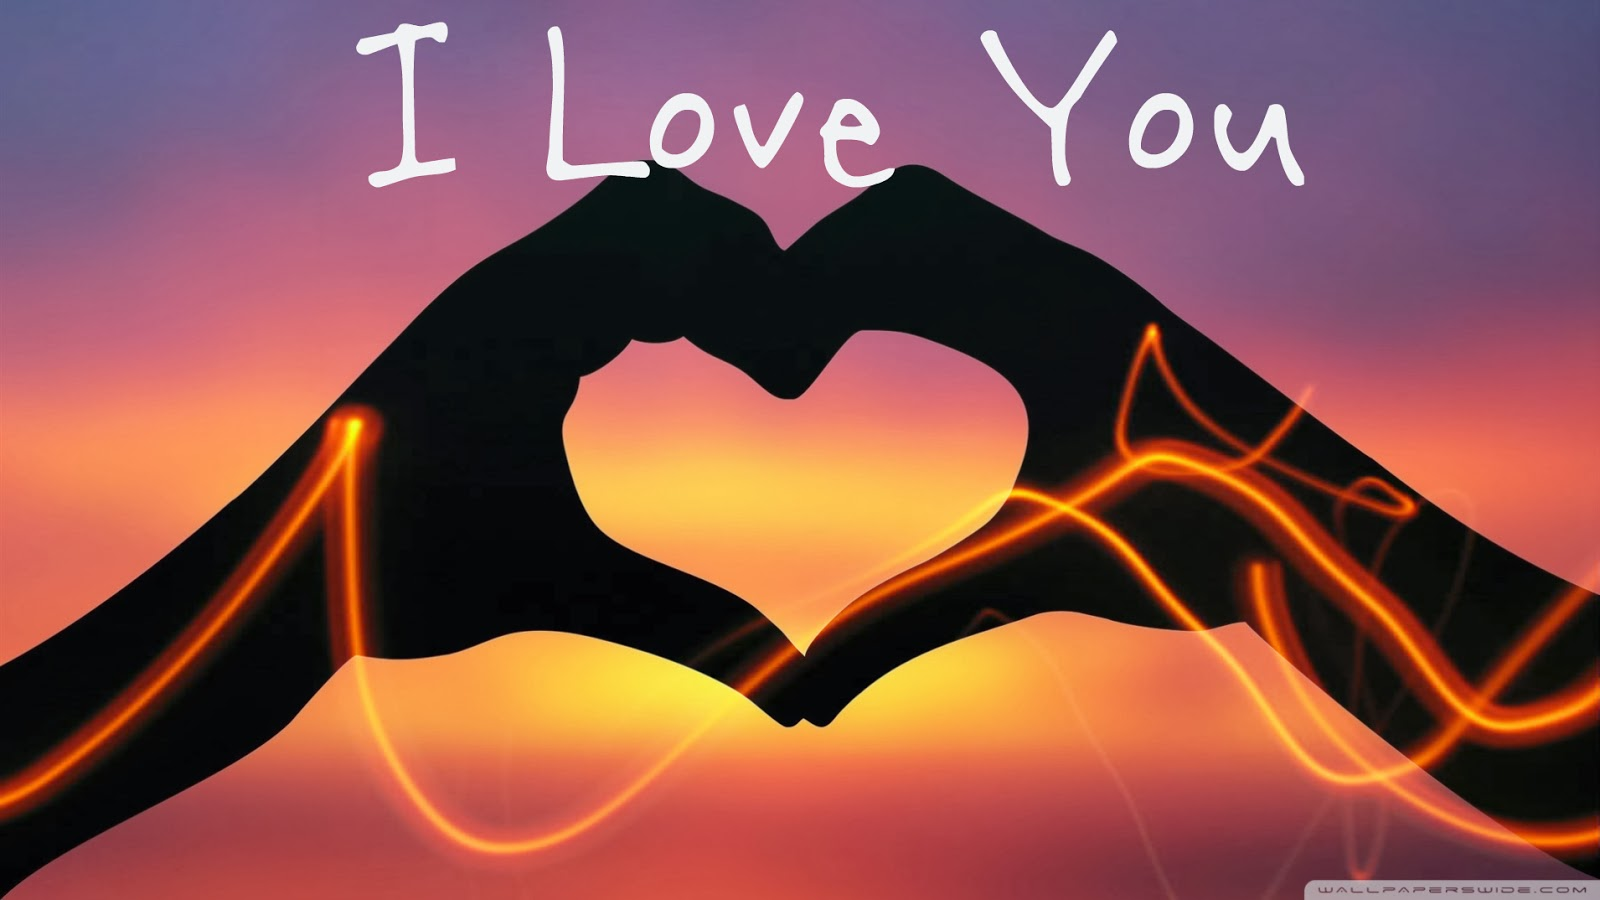 Wallpaper Love You 3d : I Love You wallpaper 1600x900 #43292